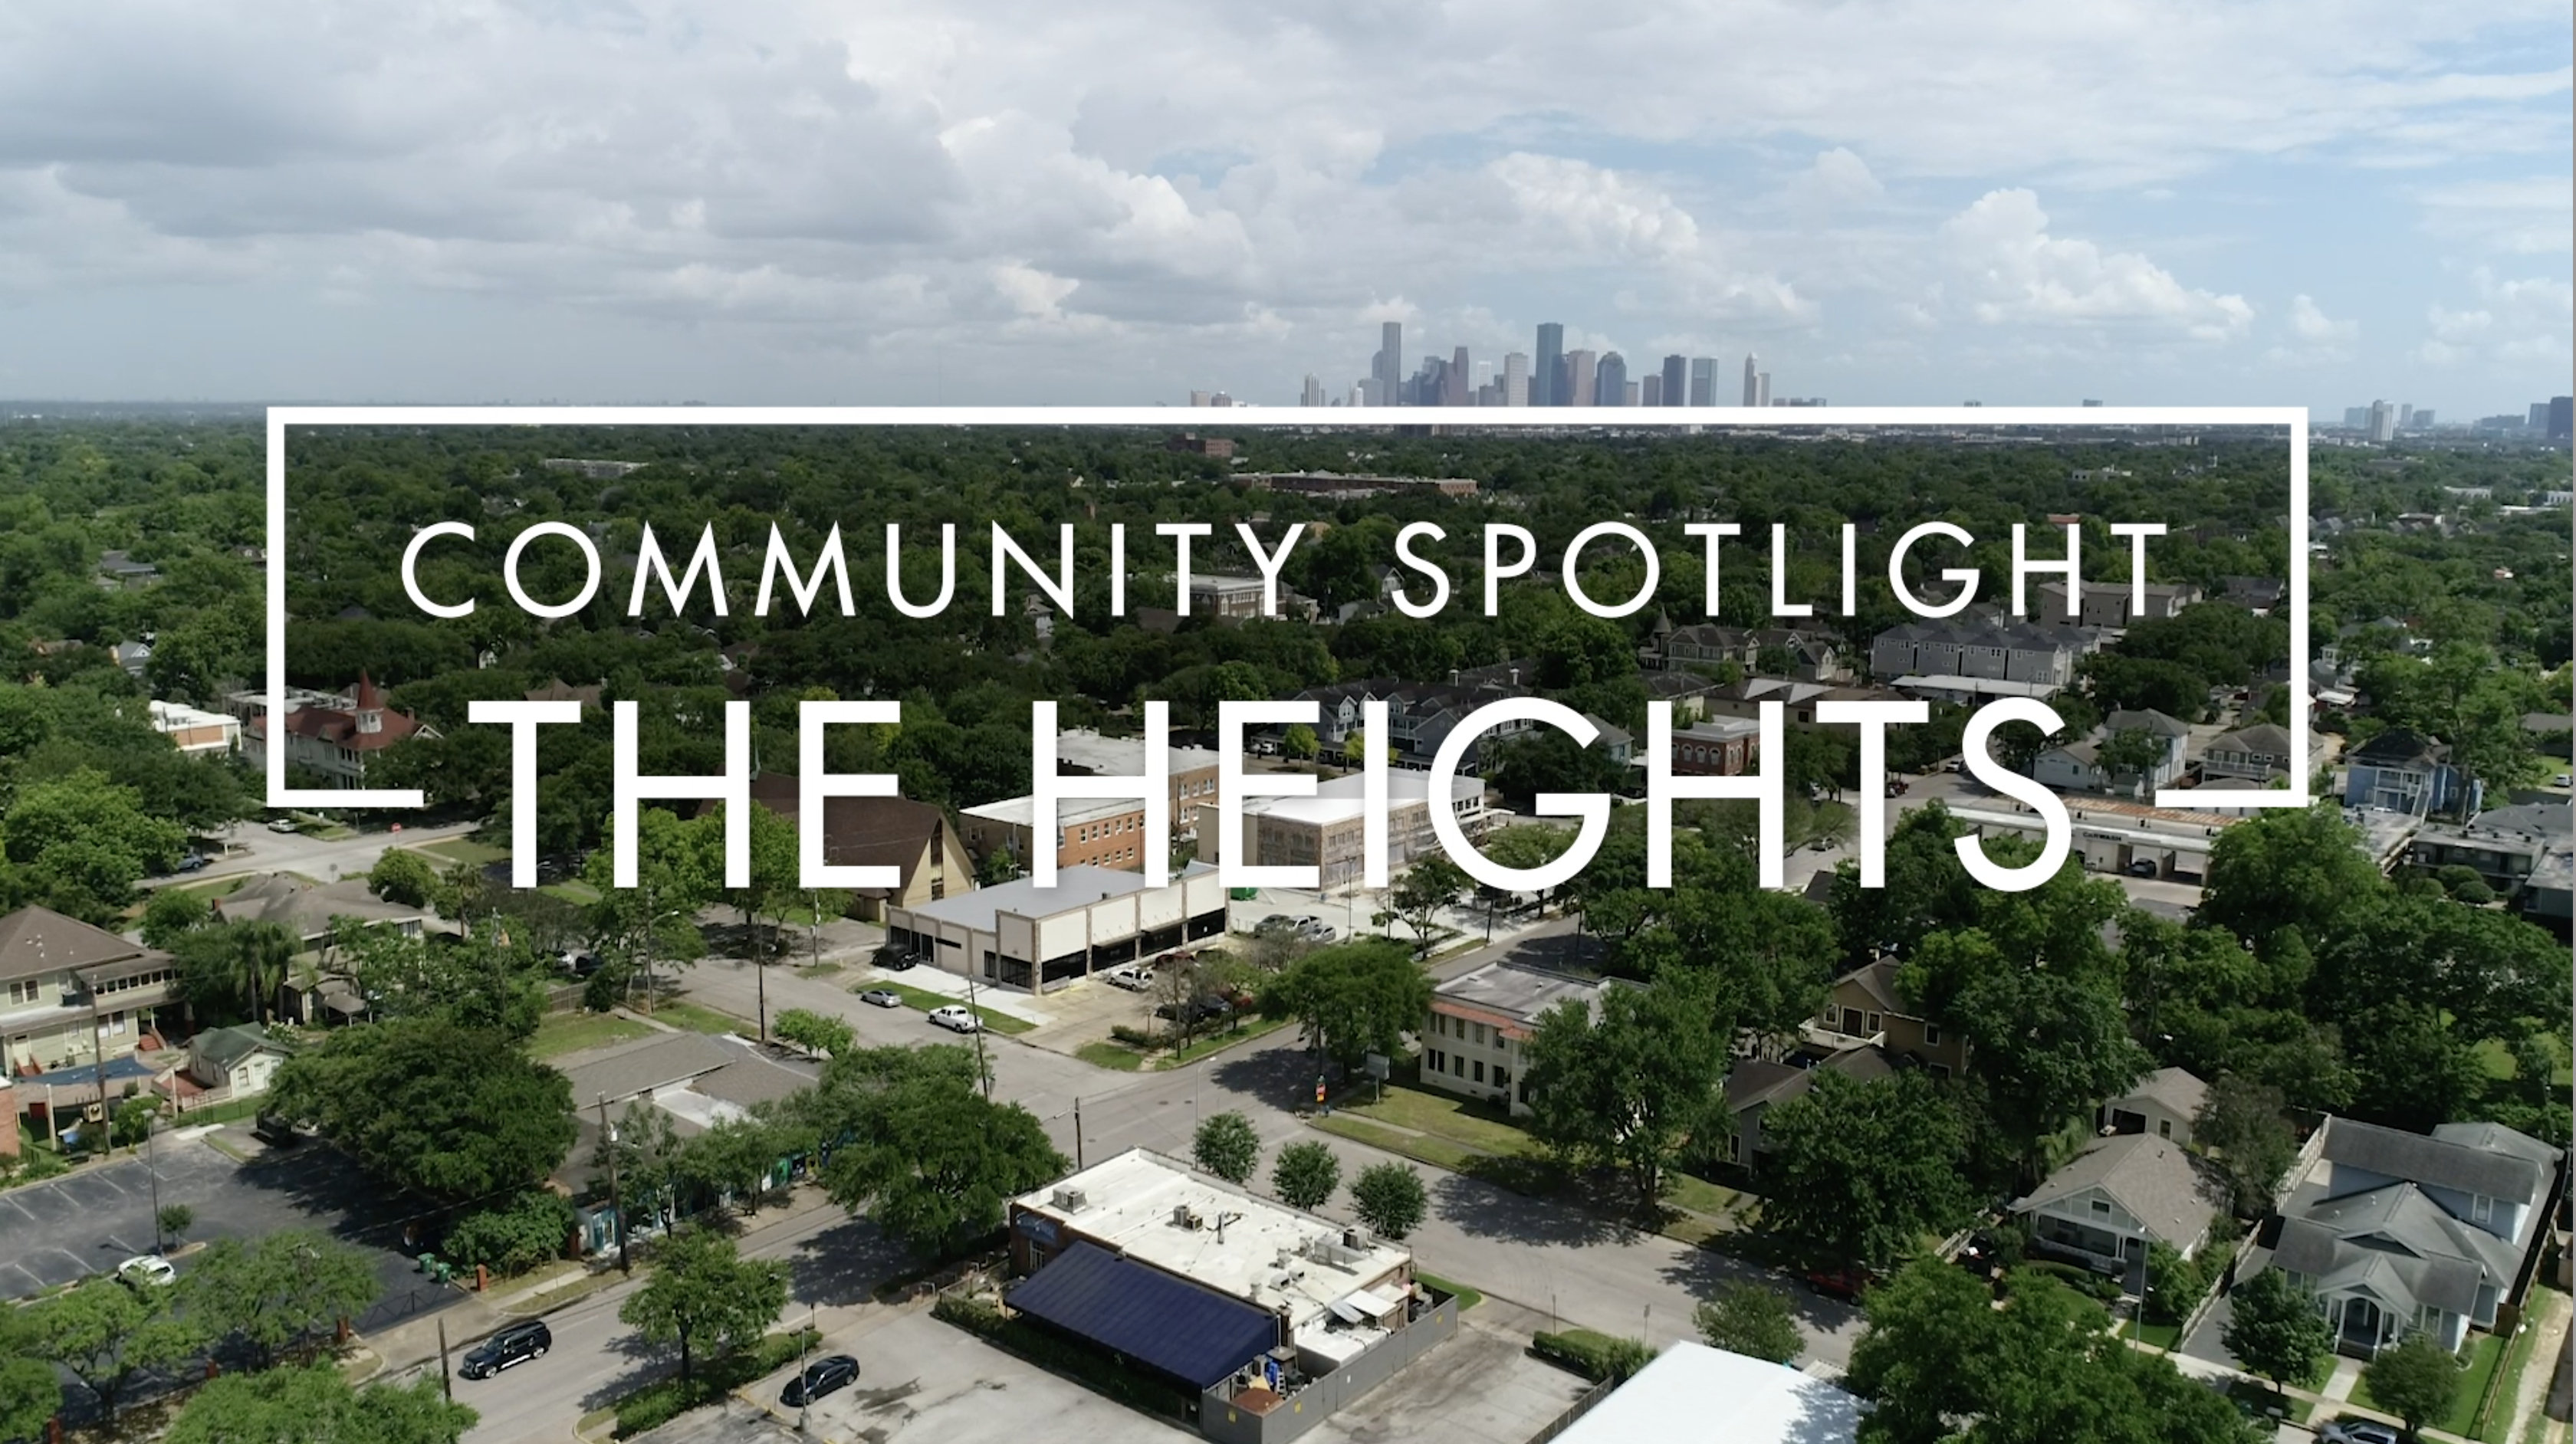 TLG Community Spotlight: The Heights